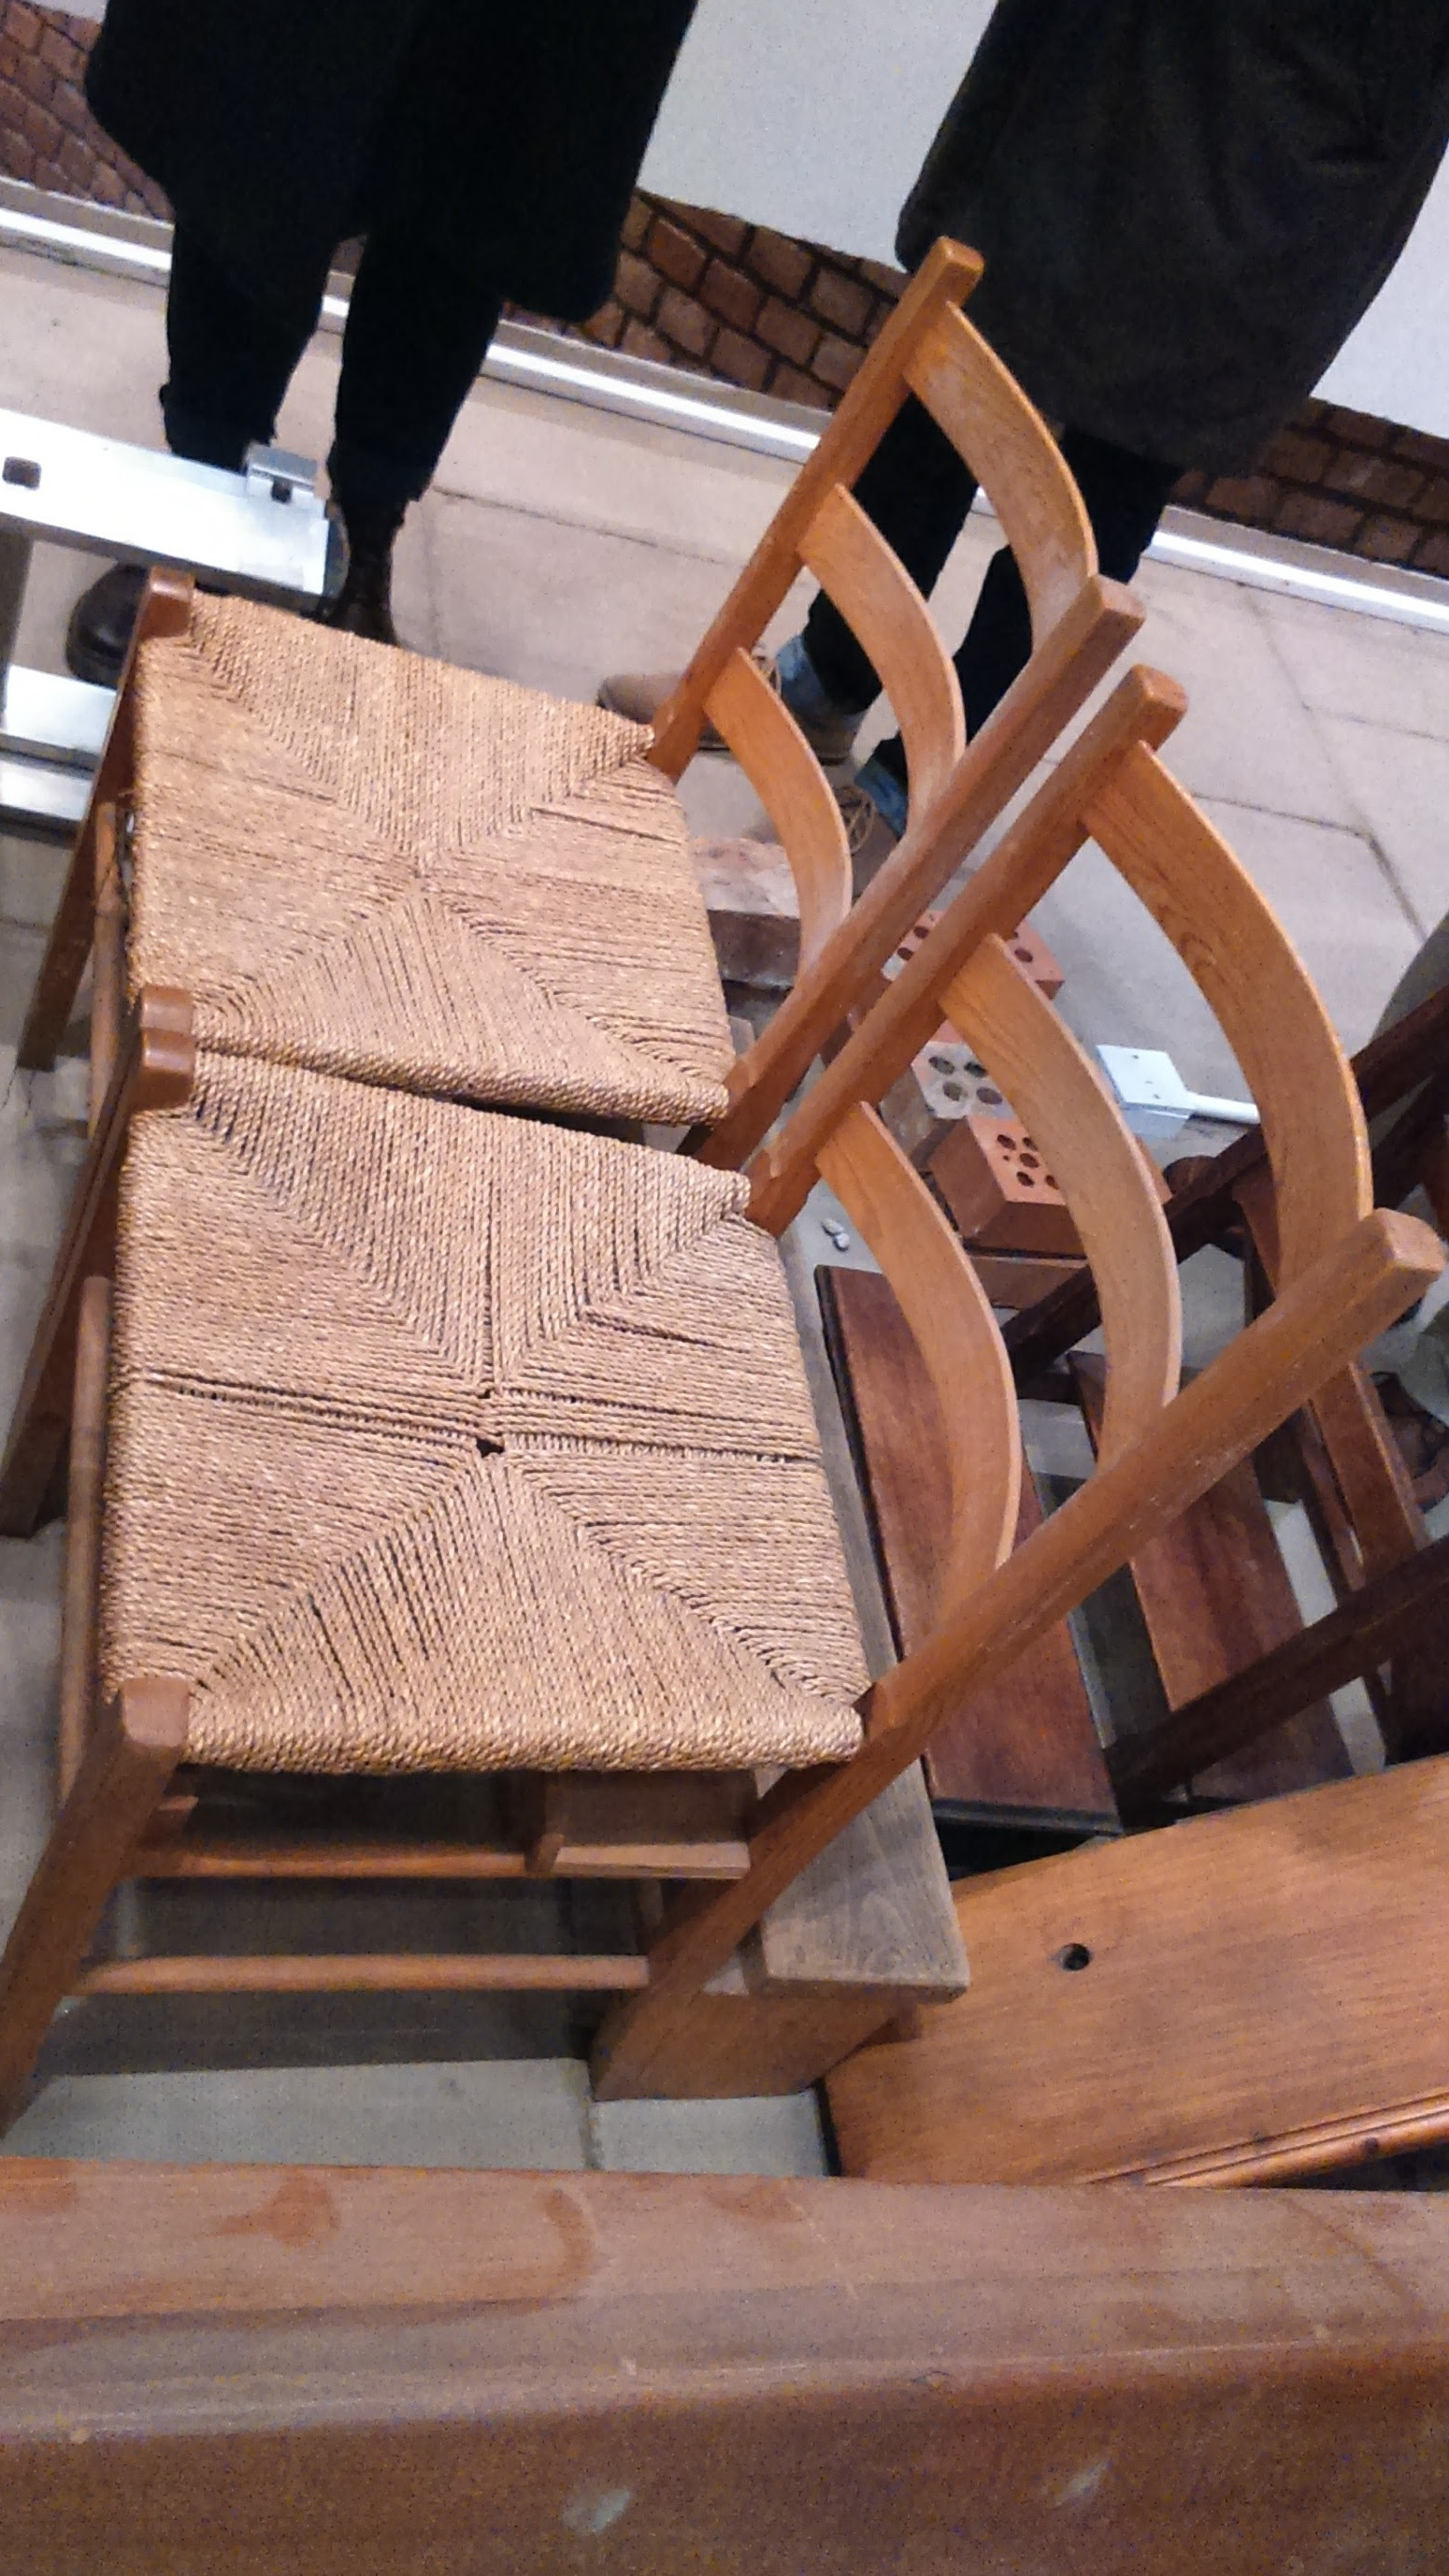 It's possible the chairs are not Gillespie, Kidd and Coia originals. Then again, they might be. I have no idea.